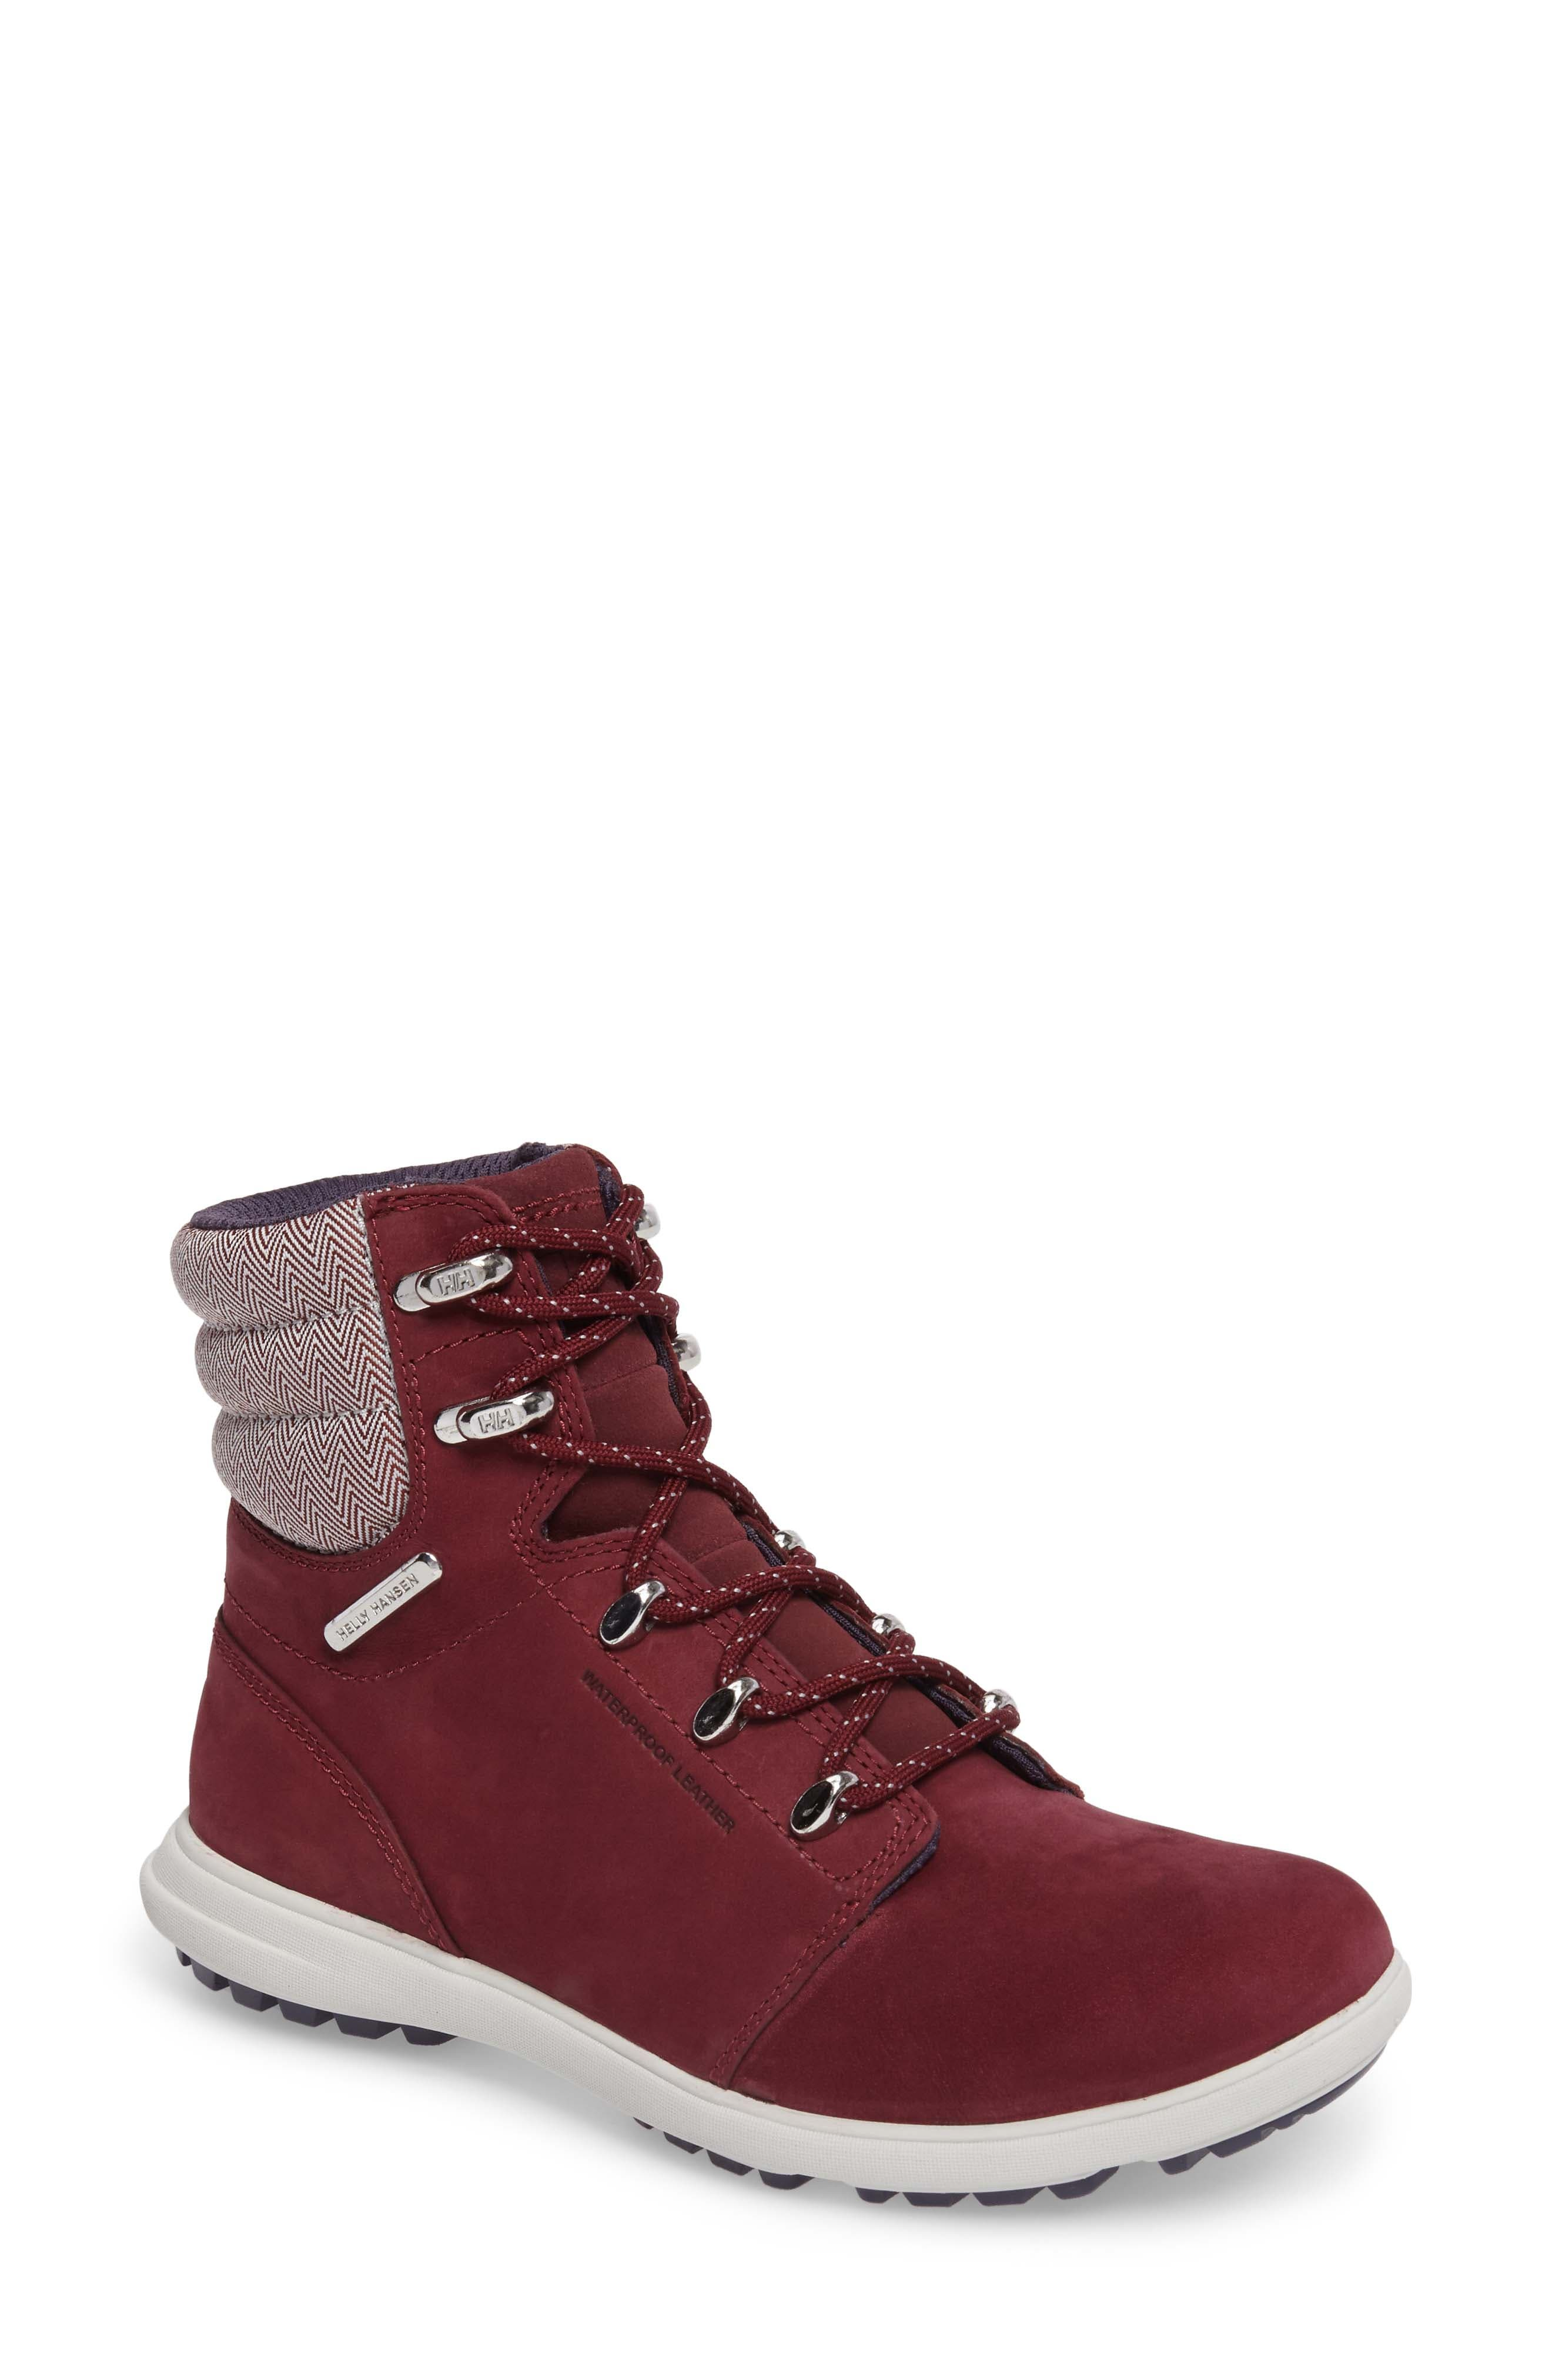 'W.A.S.T 2' Waterproof Hiker Boot,                             Main thumbnail 1, color,                             Port / Ash Grey / Graphite